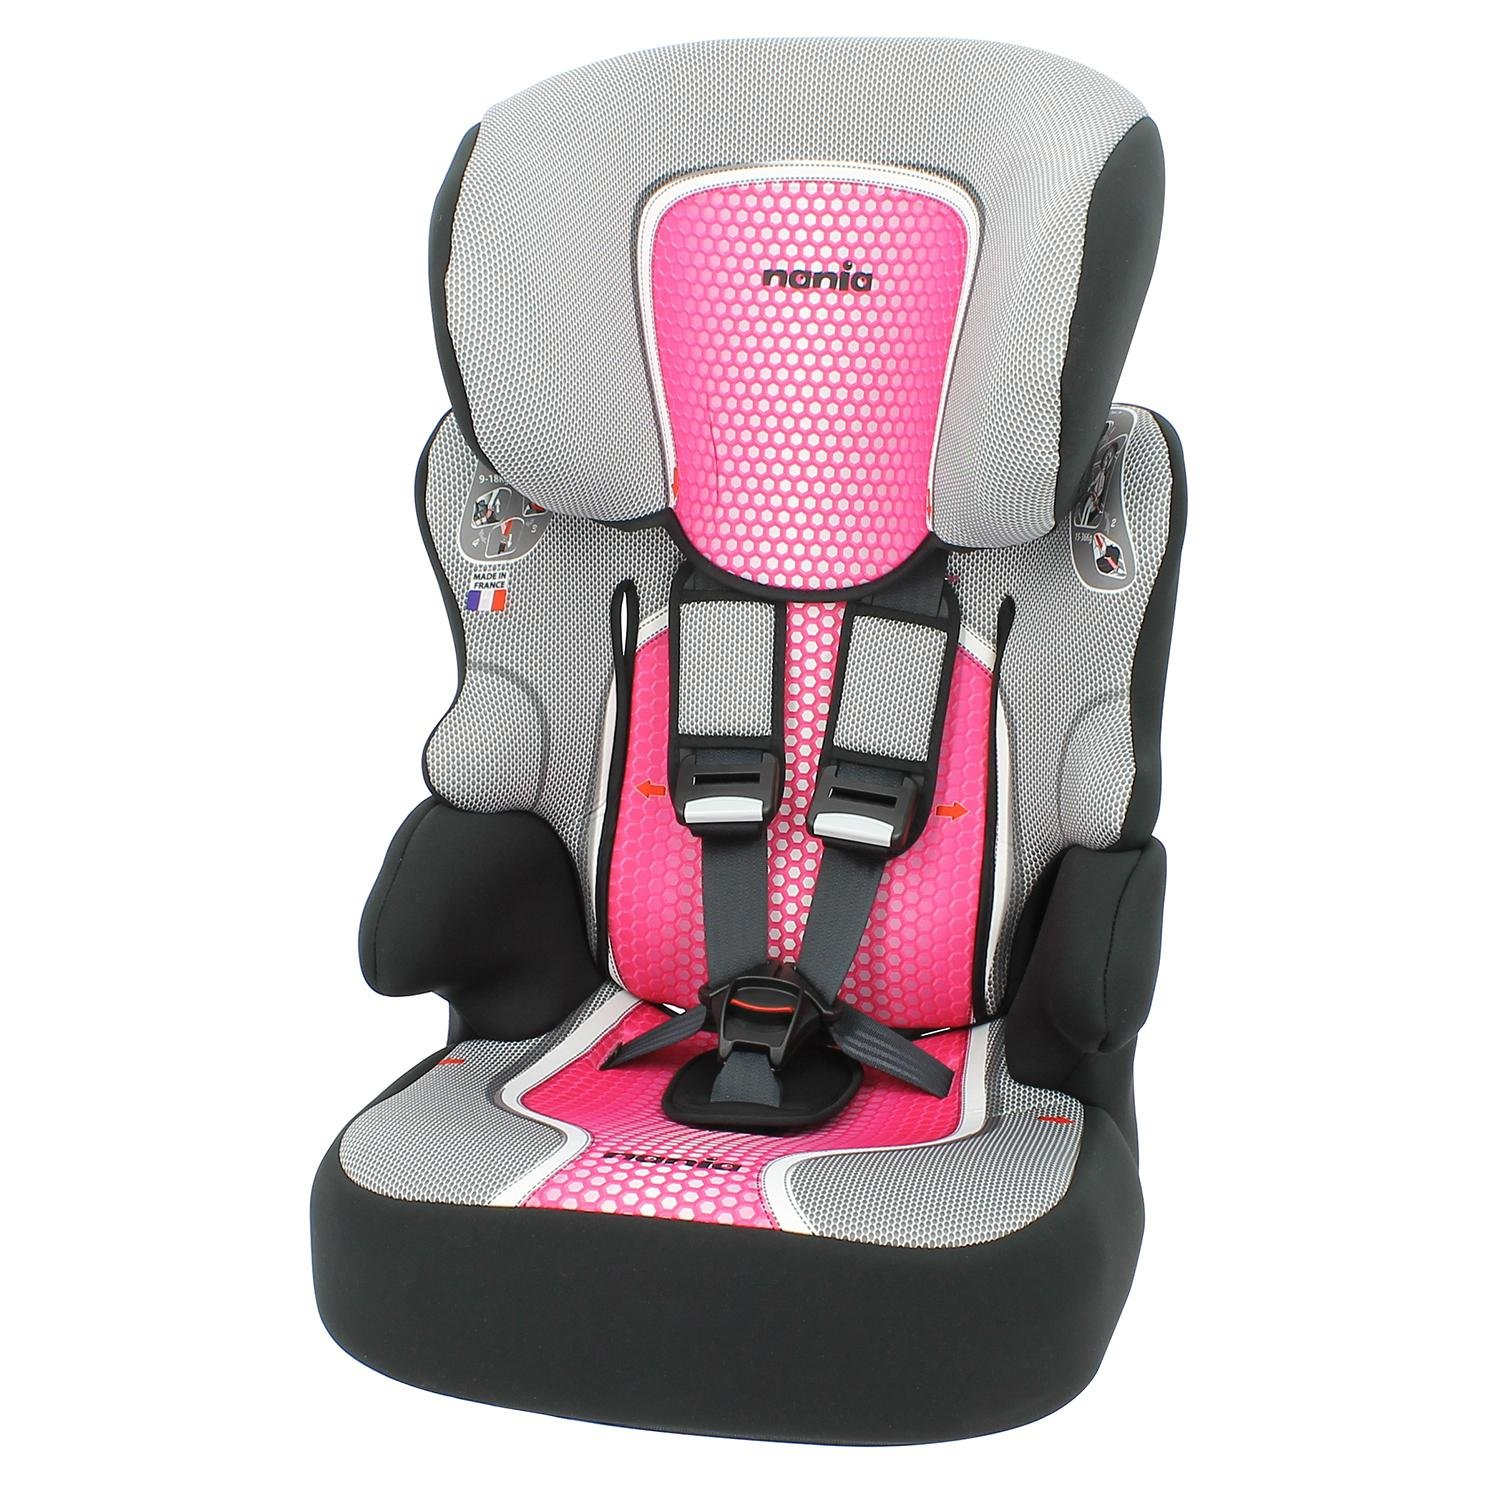 Carseat Highback Booster with harness - Group 1/ 2/3